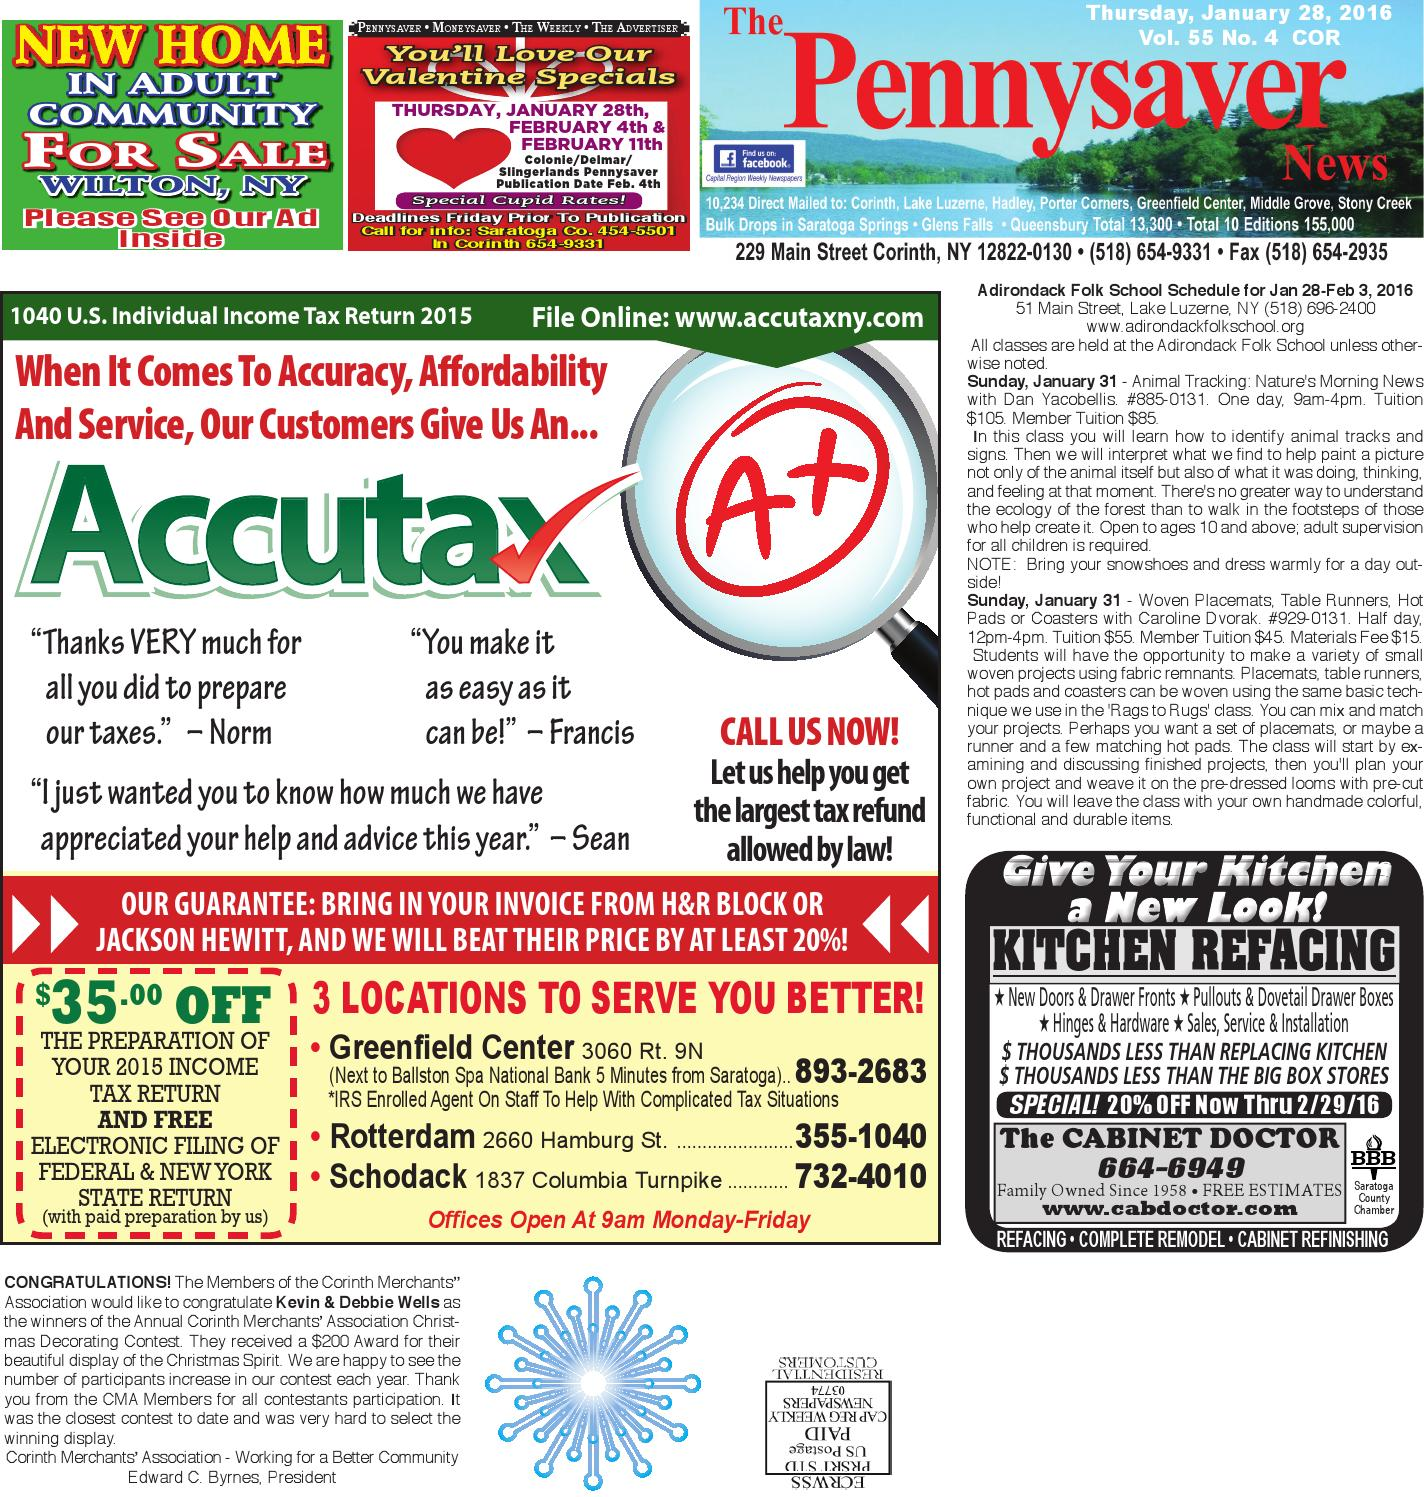 Corinth Pennysaver By Capital Region Weekly Newspapers Issuu - What is a deposit invoice rocco's online store